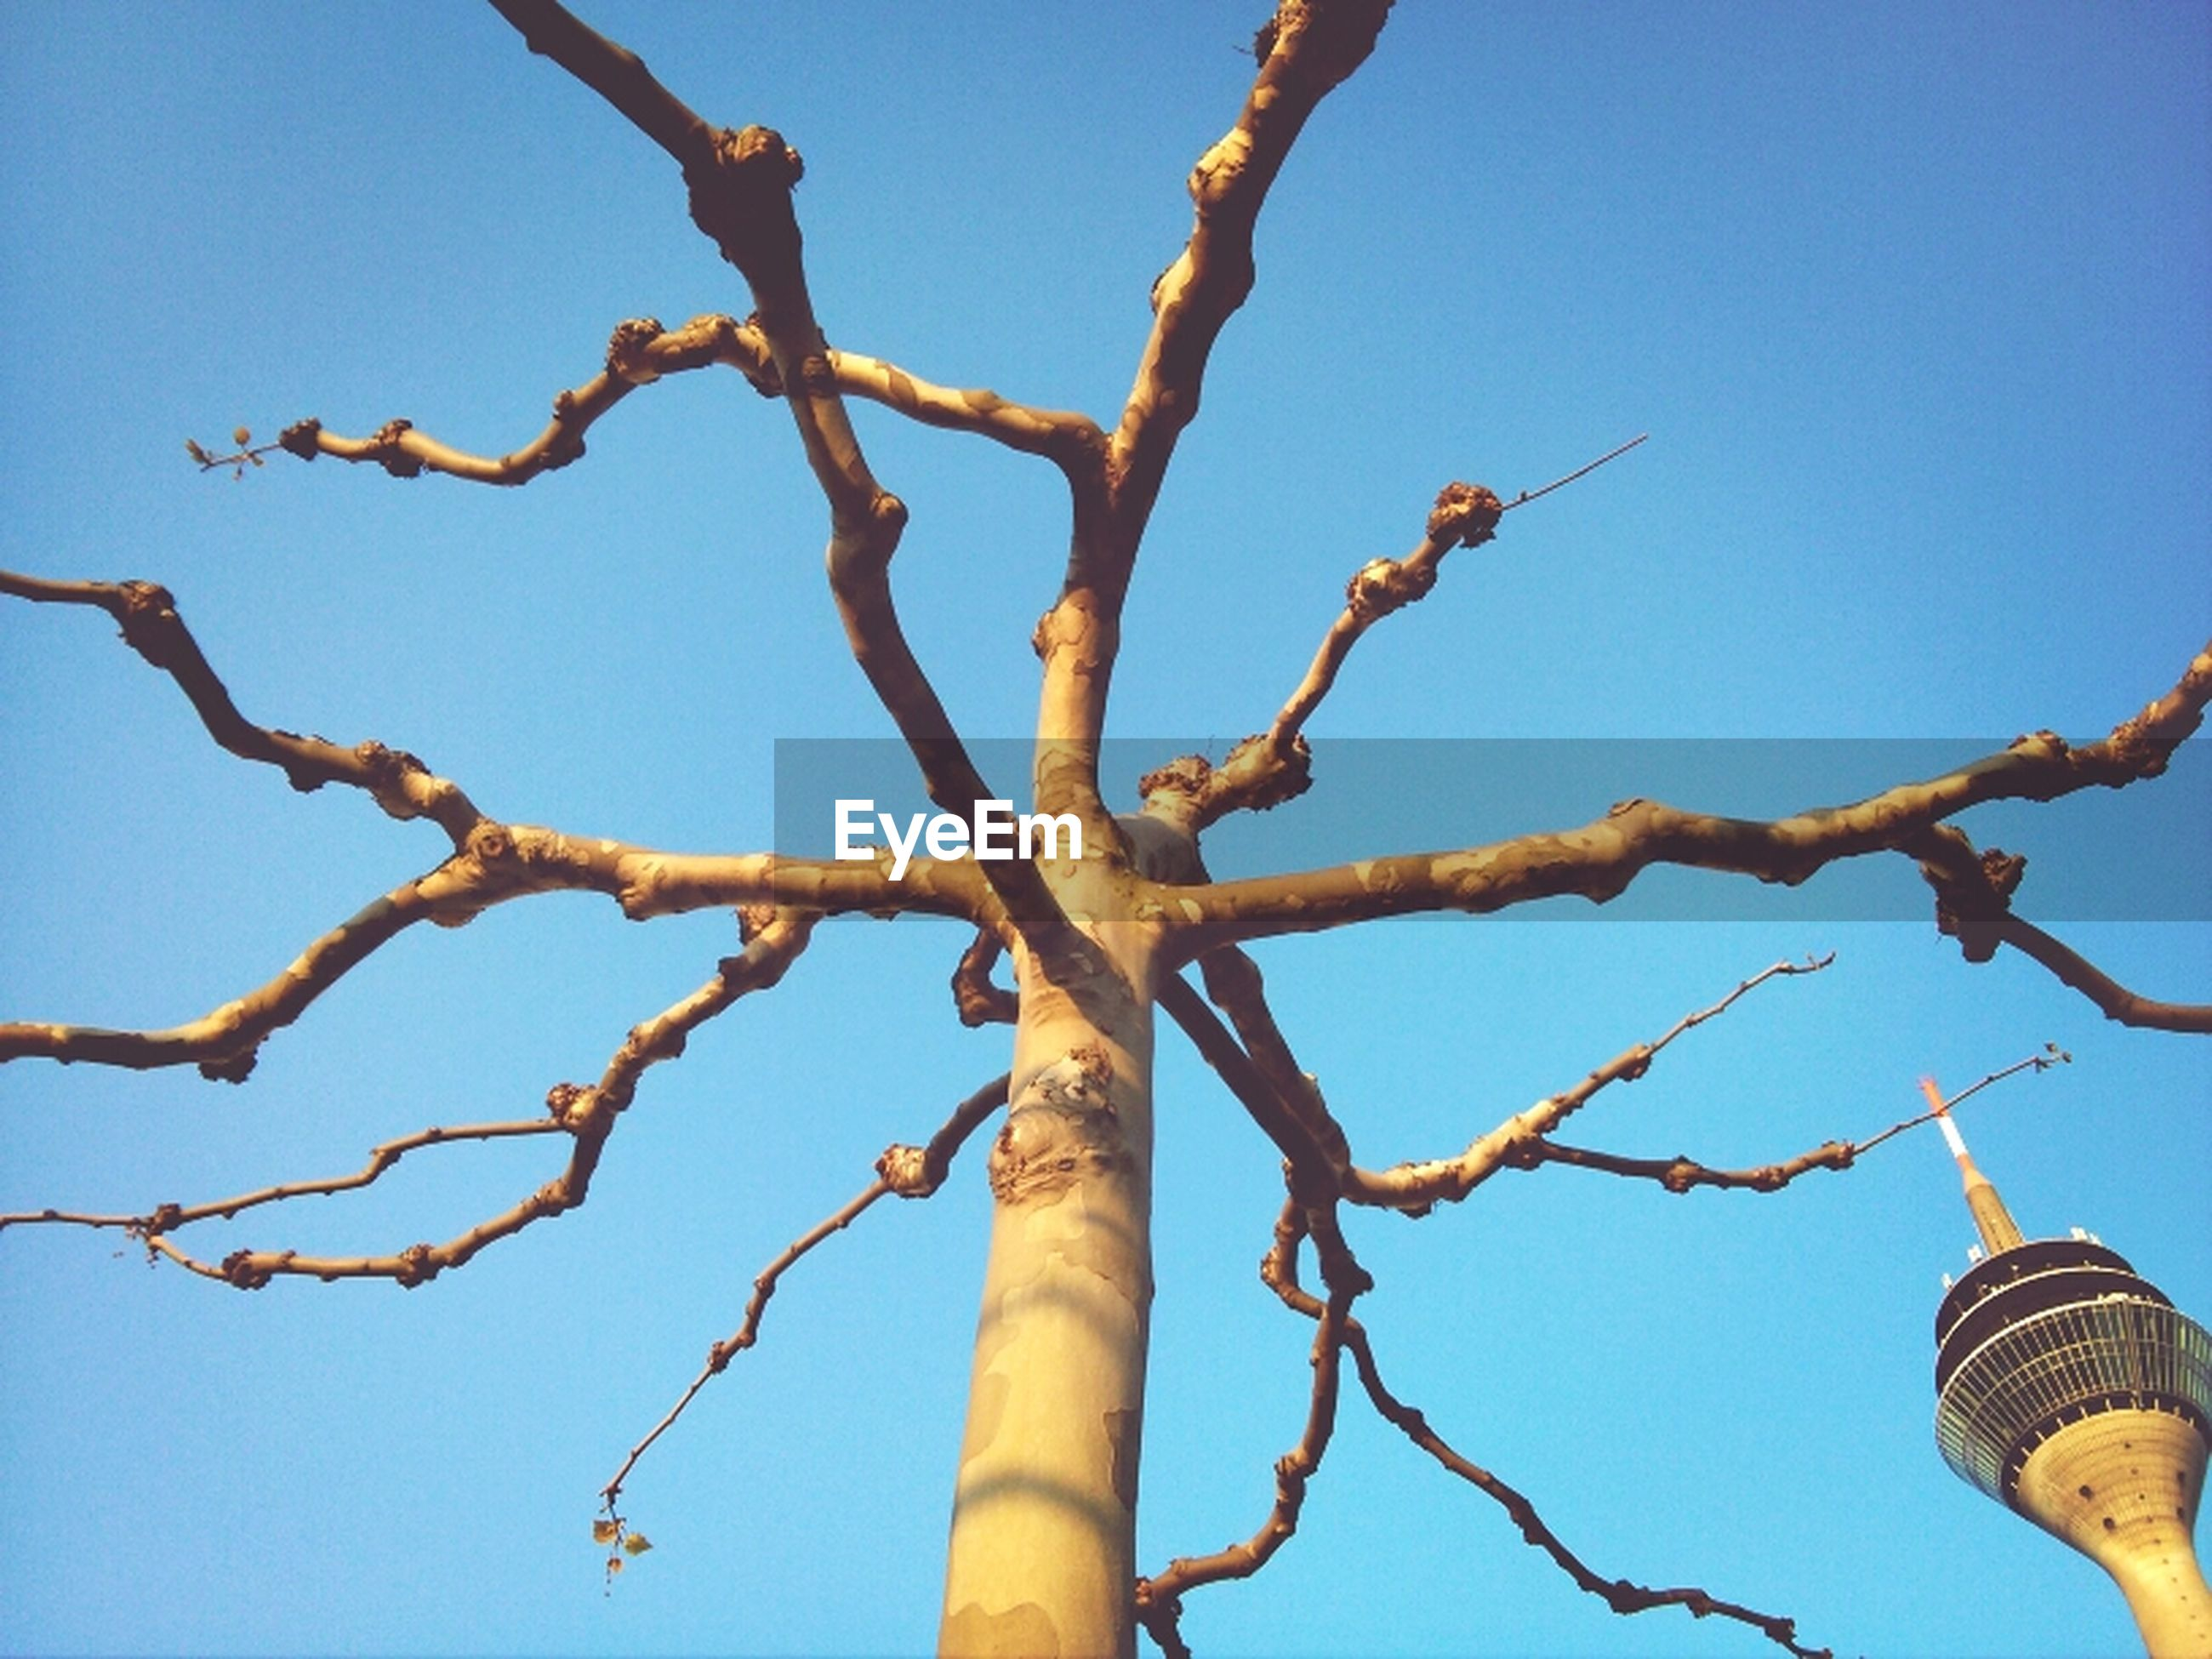 low angle view, clear sky, branch, tree, blue, bare tree, nature, sky, day, outdoors, no people, growth, tree trunk, part of, bird, high section, sunlight, close-up, beauty in nature, built structure